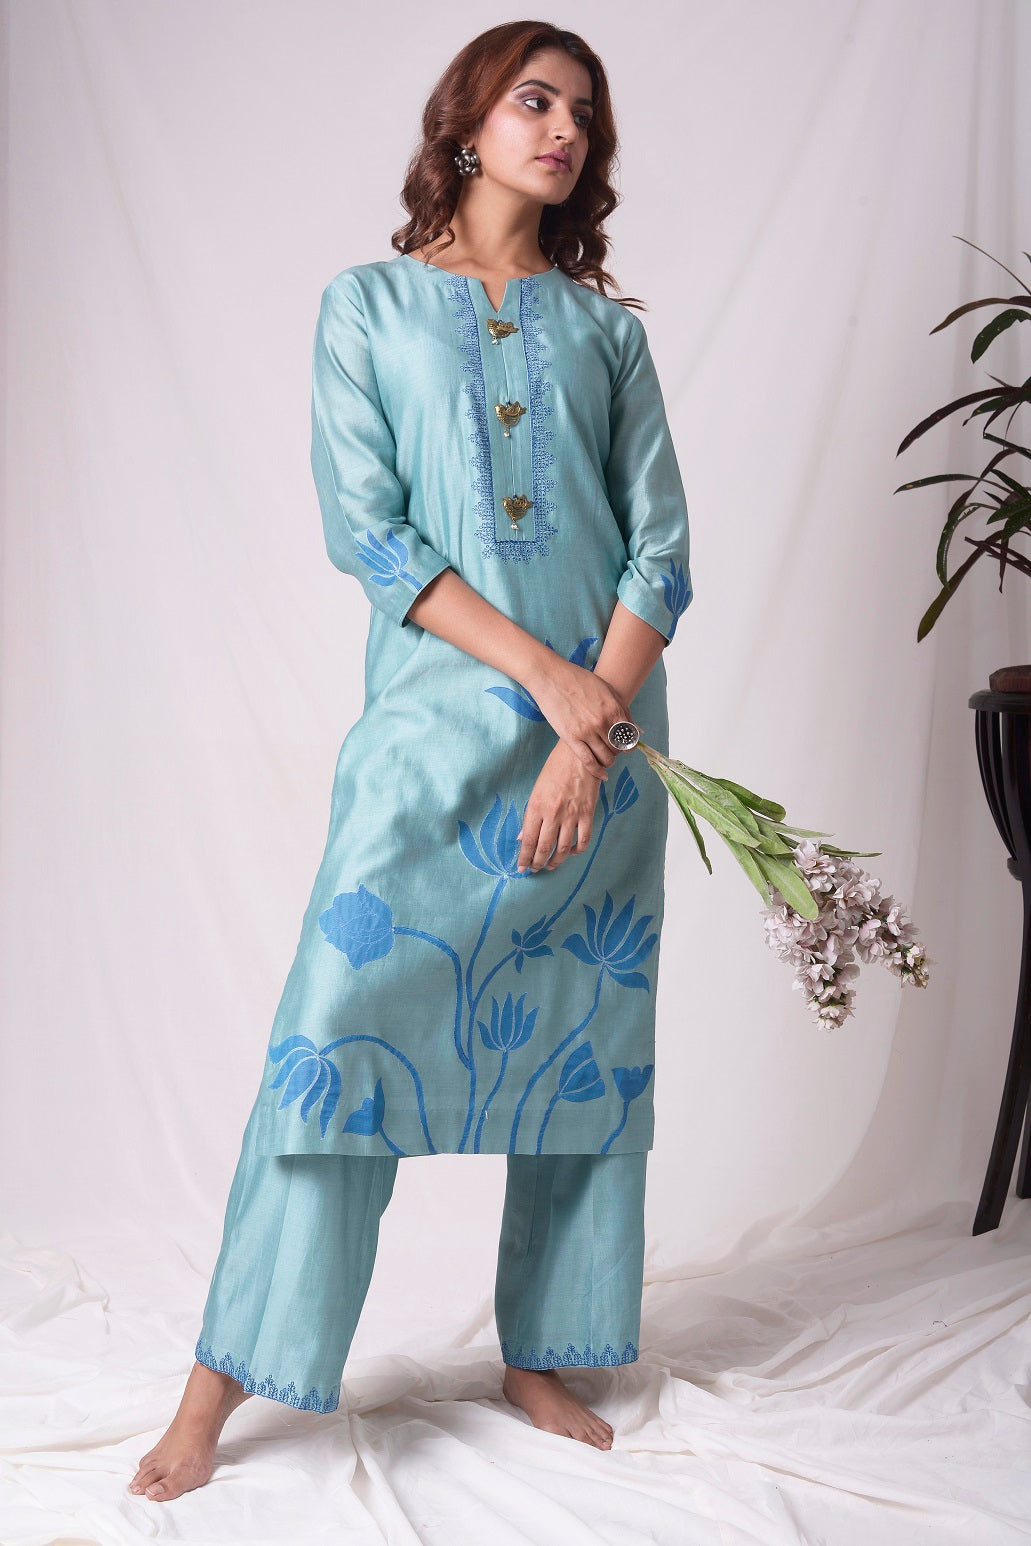 Buy aqua blue chanderi suit online in USA. Be the talk of parties and weddings with exquisite designer gowns, sharara suits, Anarkali suits, salwar suits from Pure Elegance Indian clothing store in USA. Shop online now.-full view-2